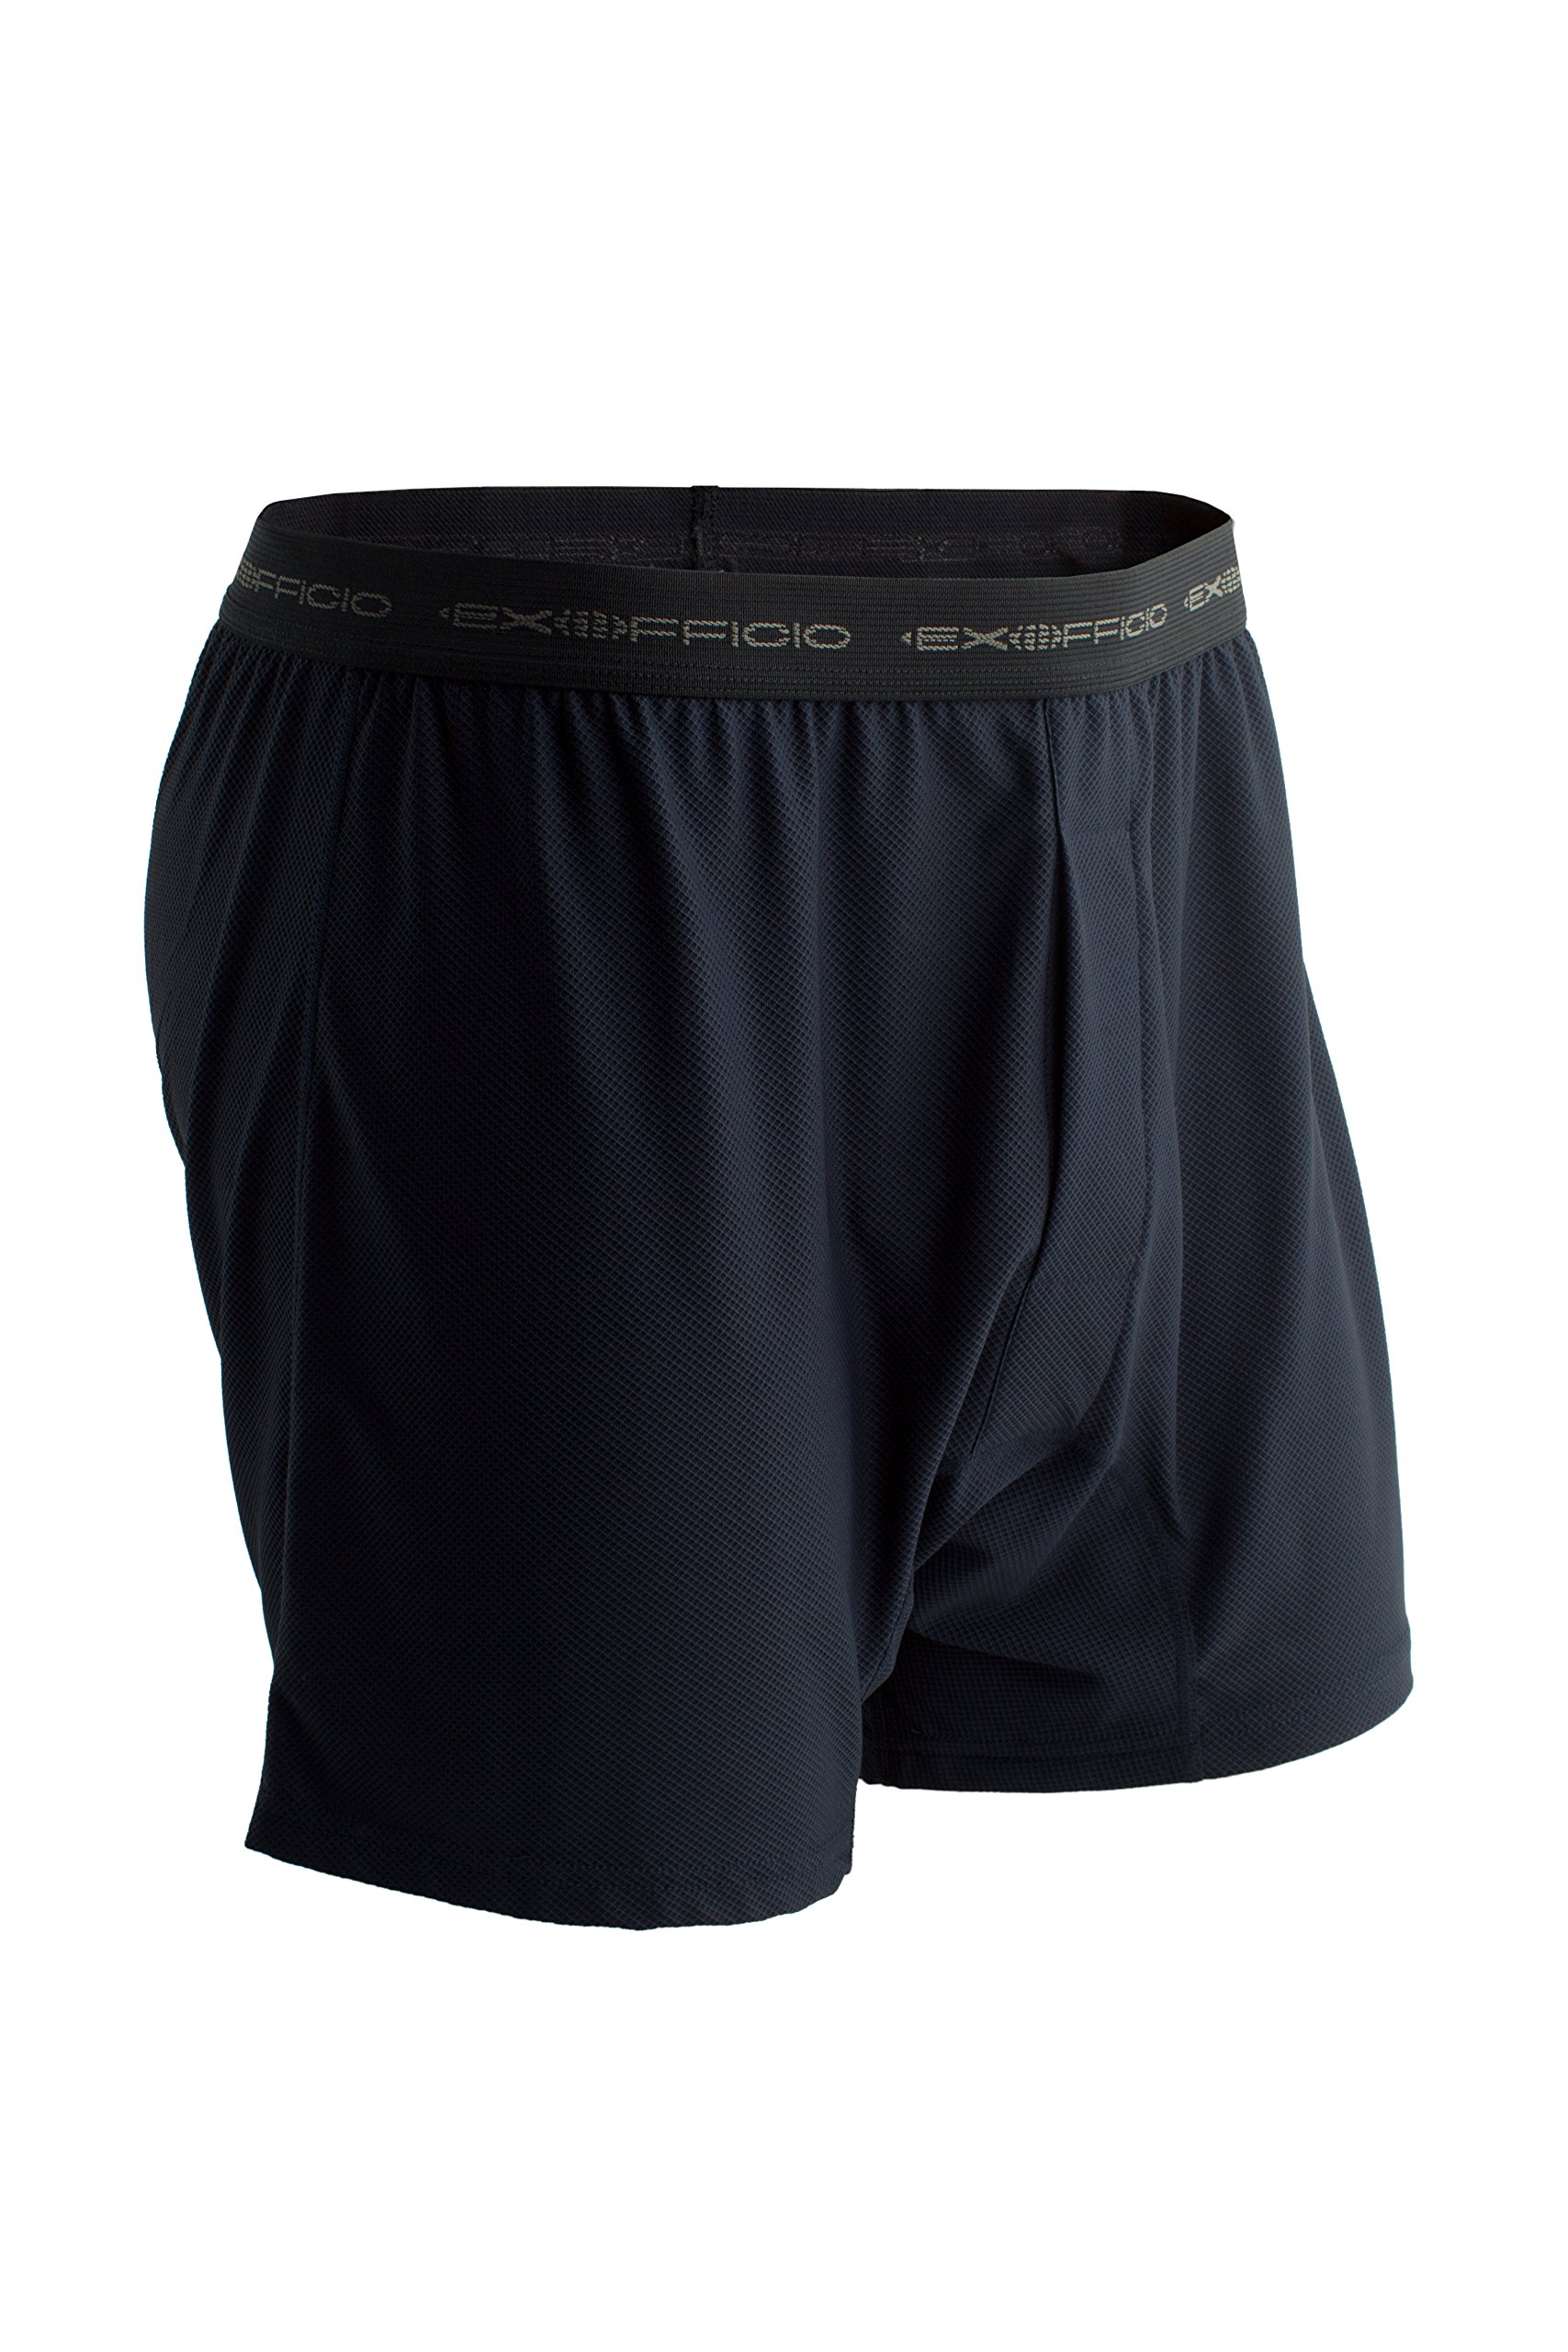 ExOfficio Men's Give-N-Go Boxer Travel Underwear, Maritime, Medium